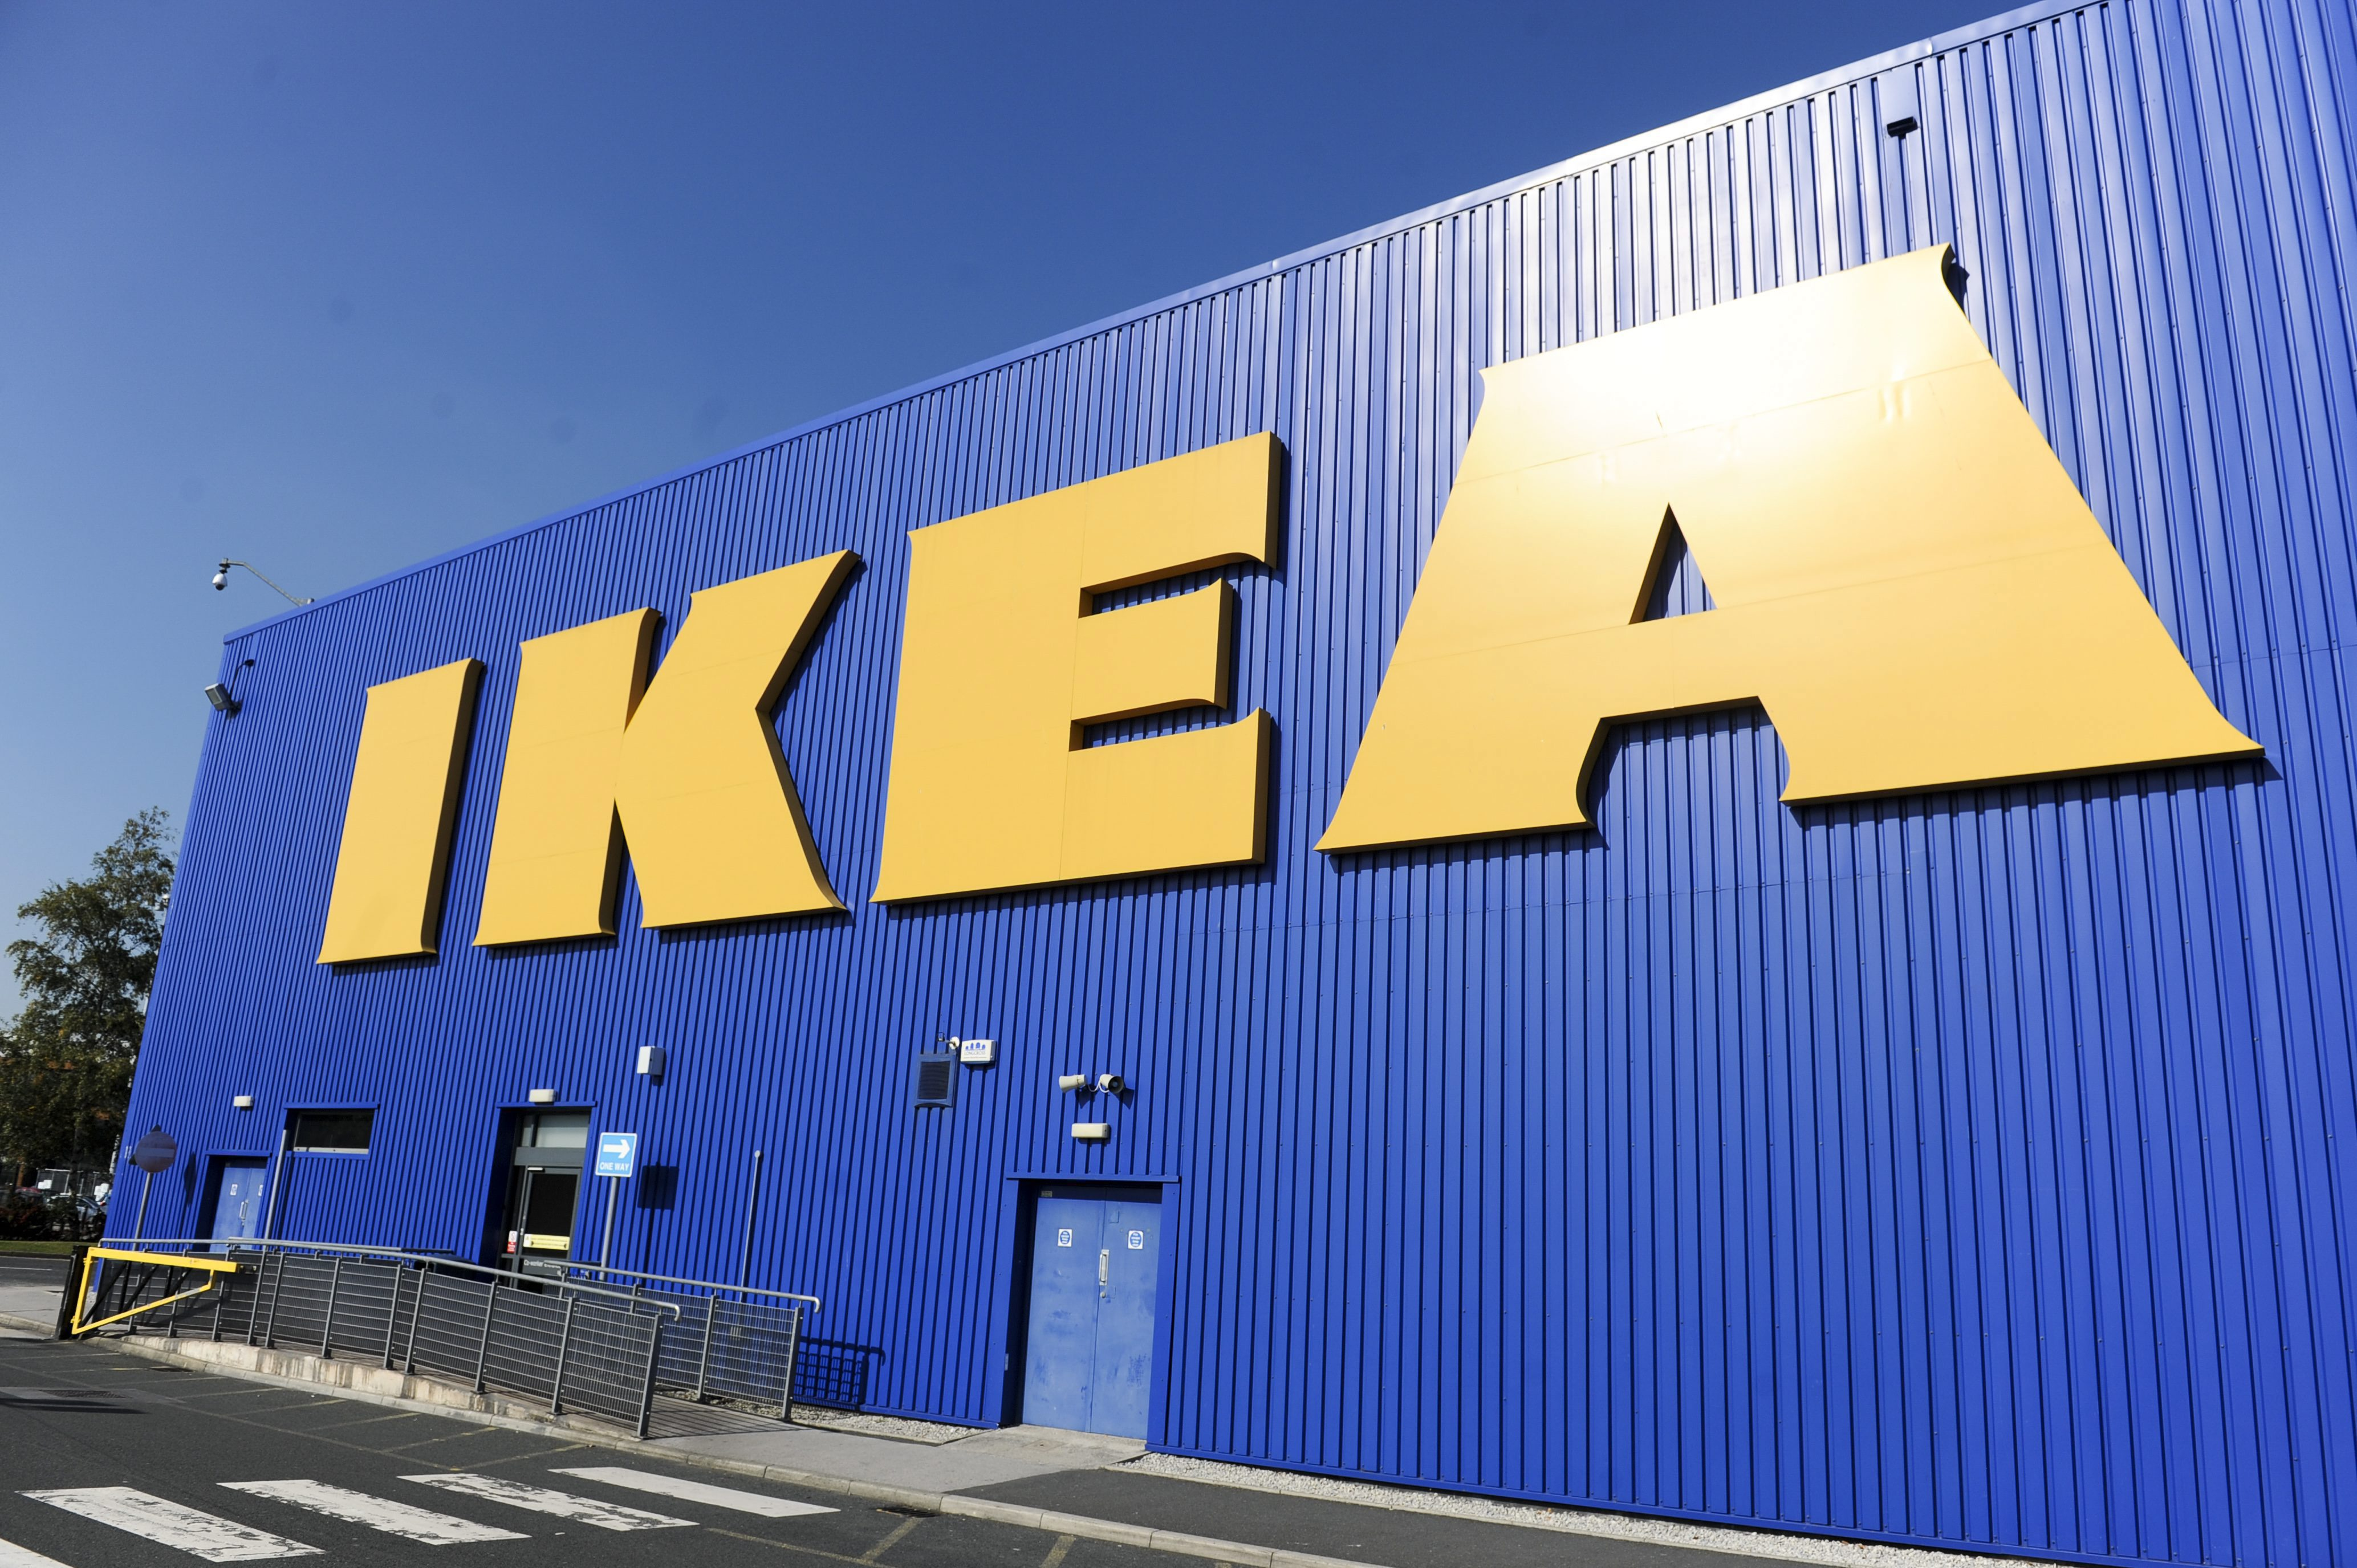 Ikea Bank Hotline Warning To Check Your Bank Balance Because Firm Has Been